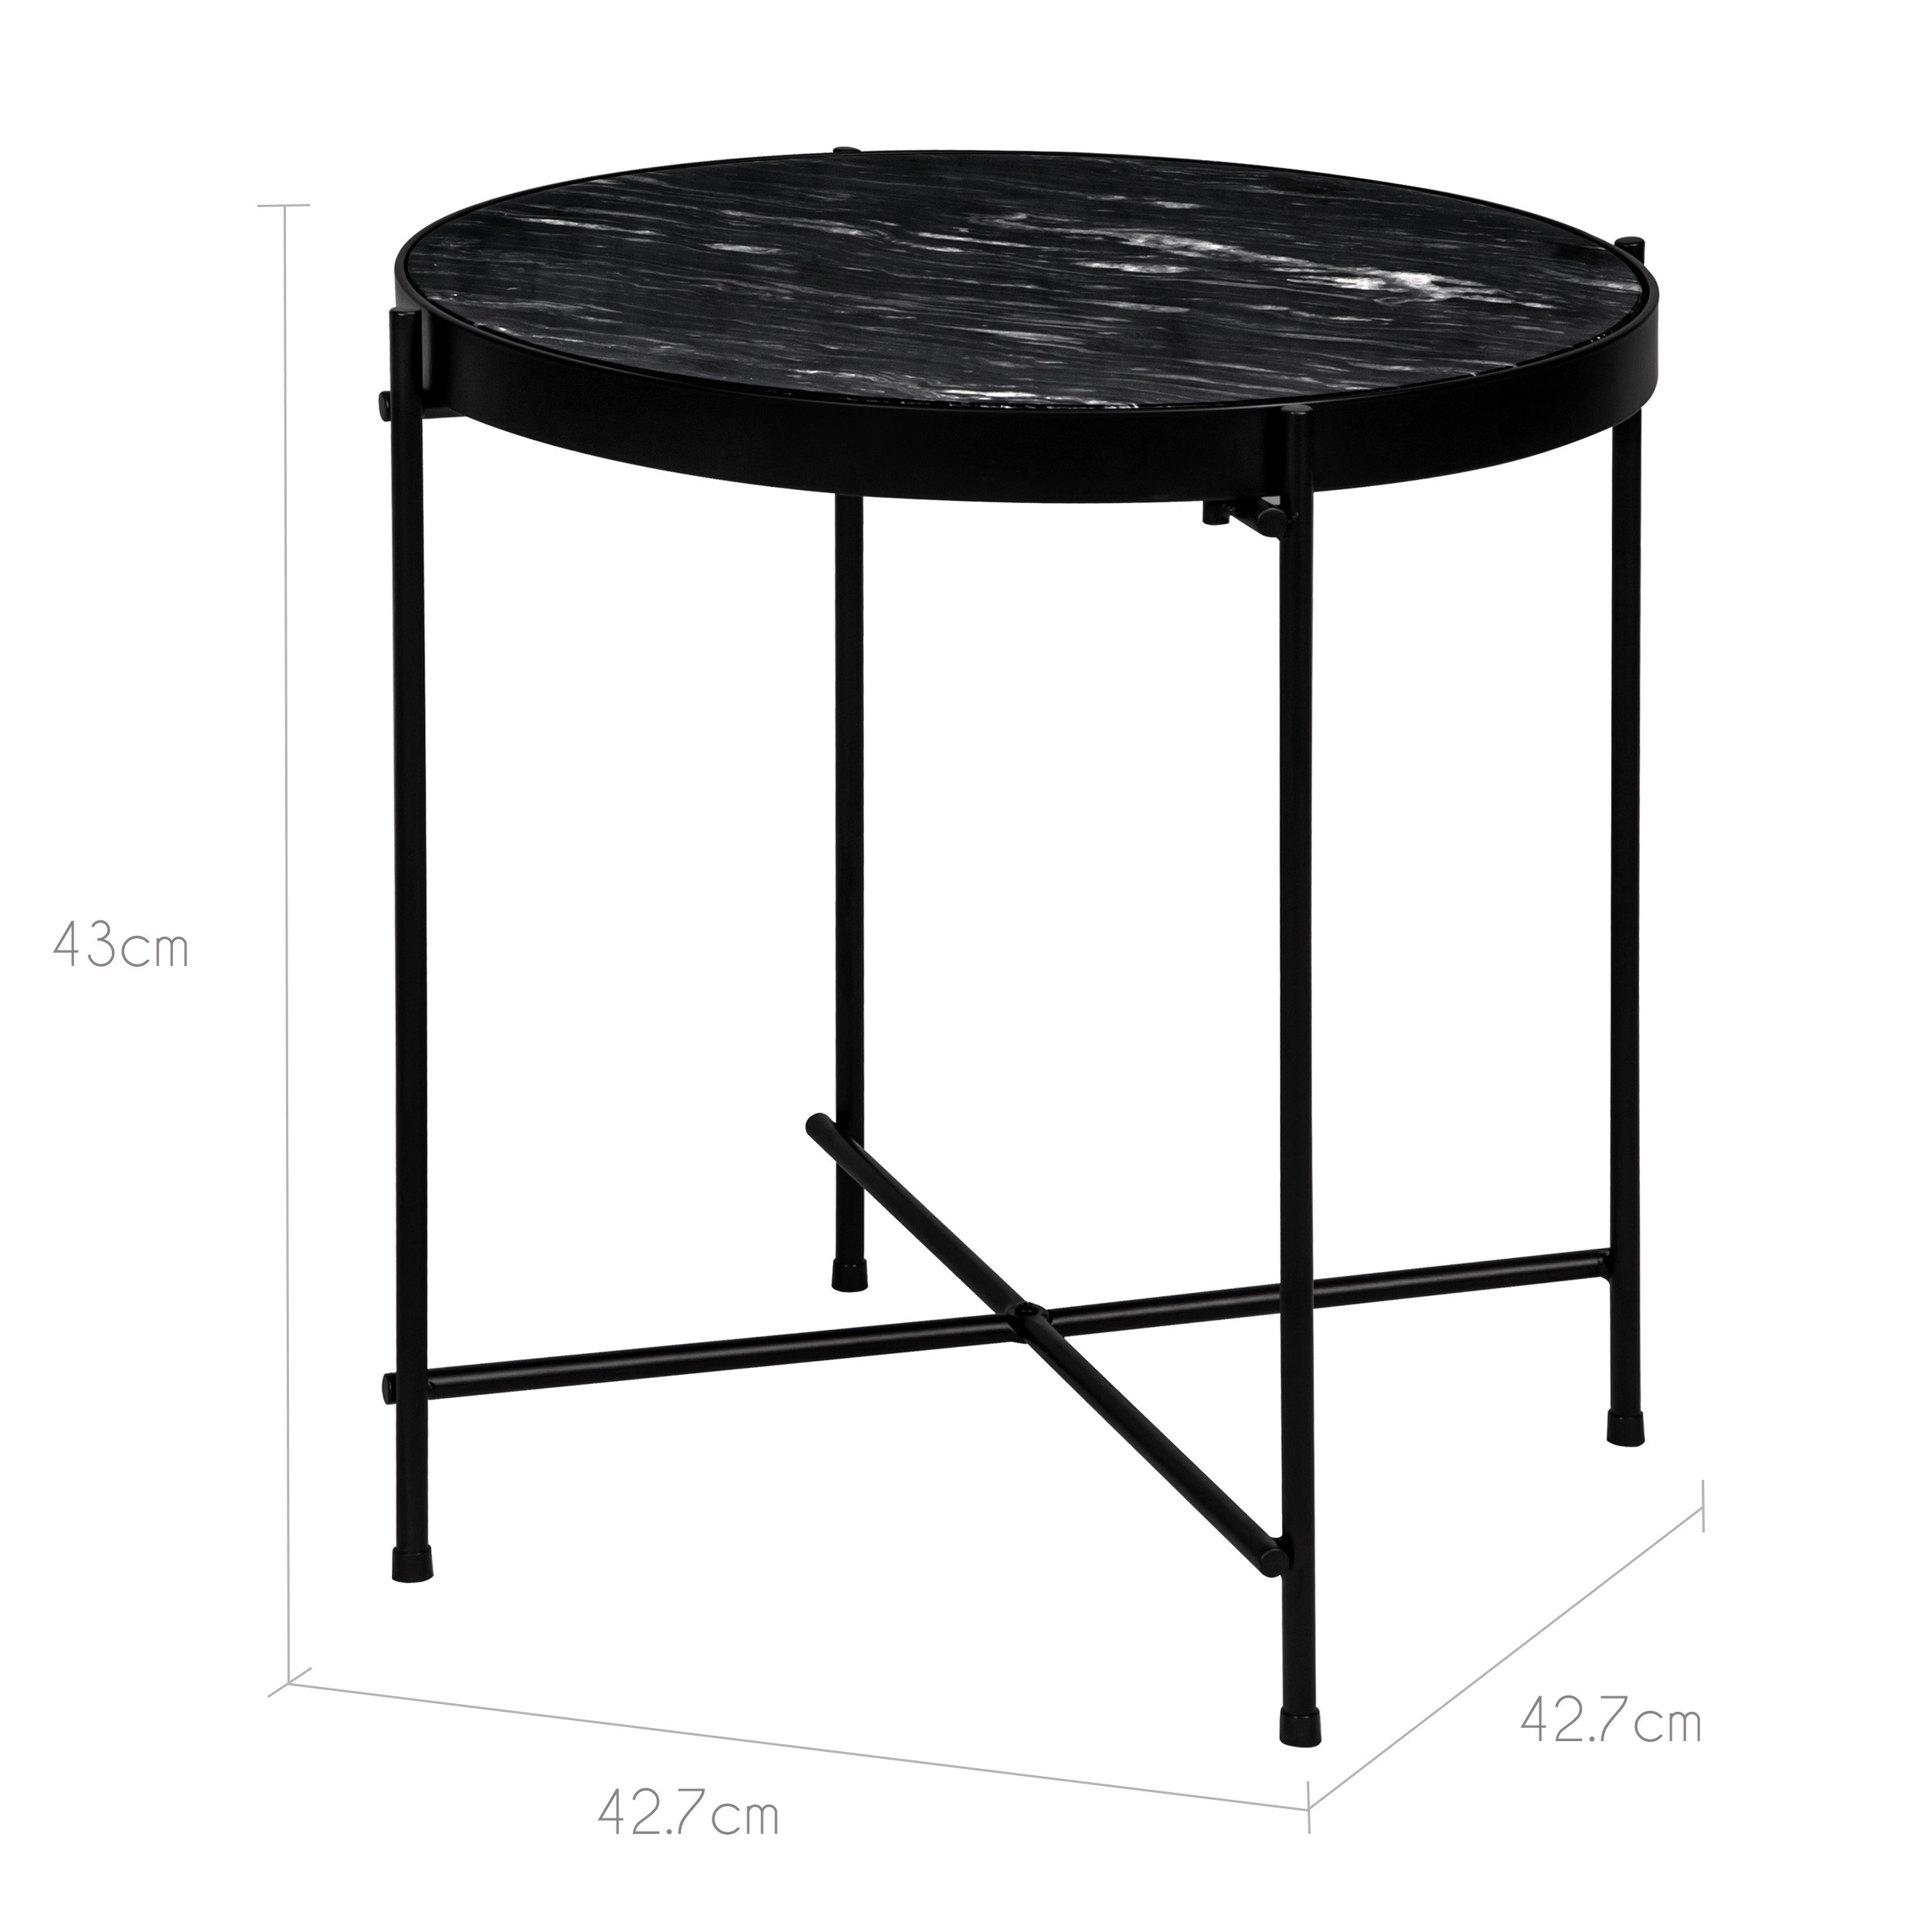 table basse ronde thilda large marbre noire d couvrez les tables basses rondes thilda larges. Black Bedroom Furniture Sets. Home Design Ideas